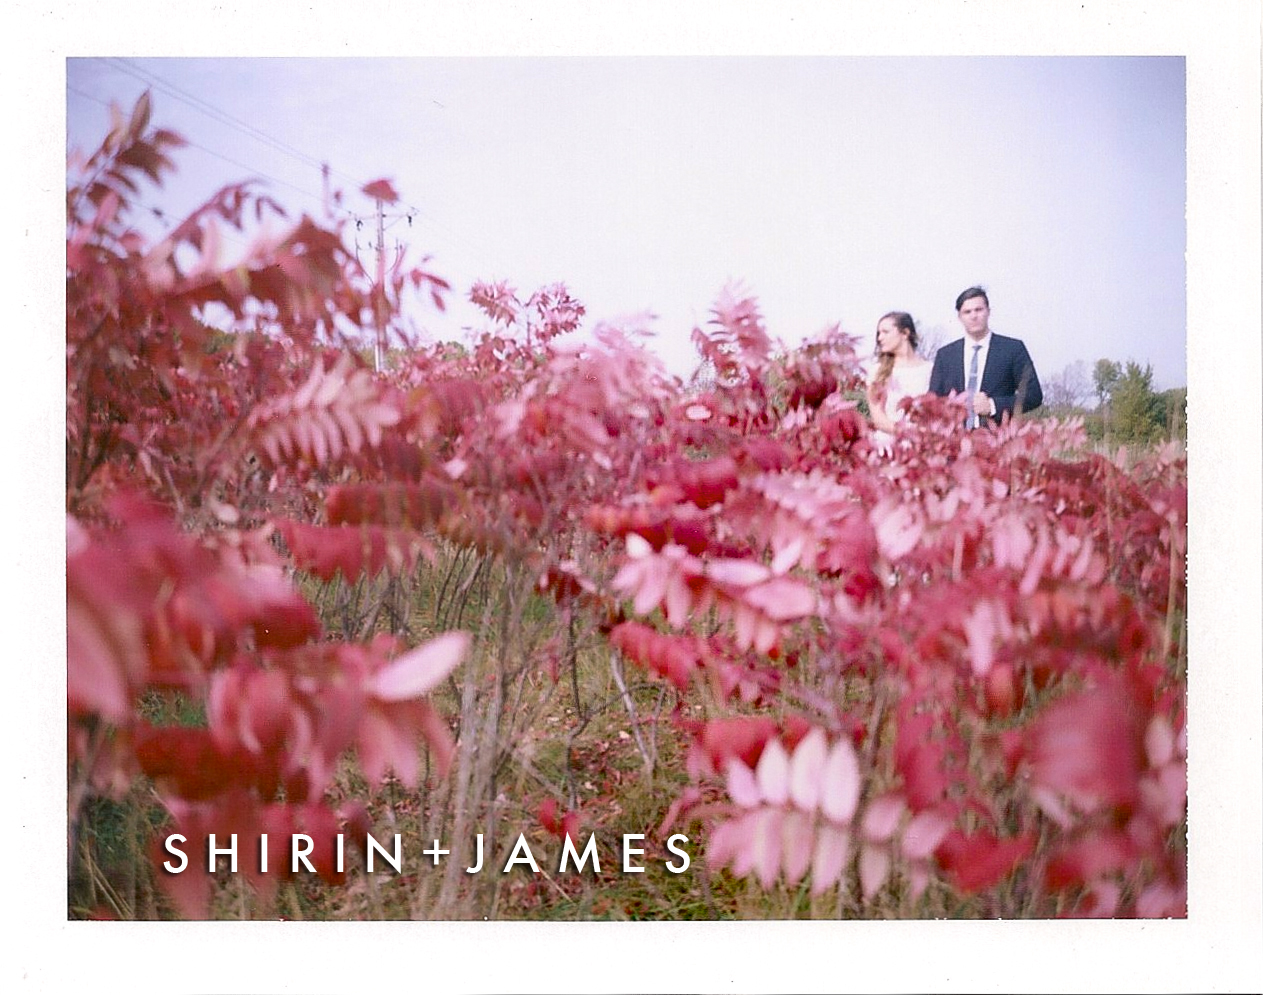 shirinandjames